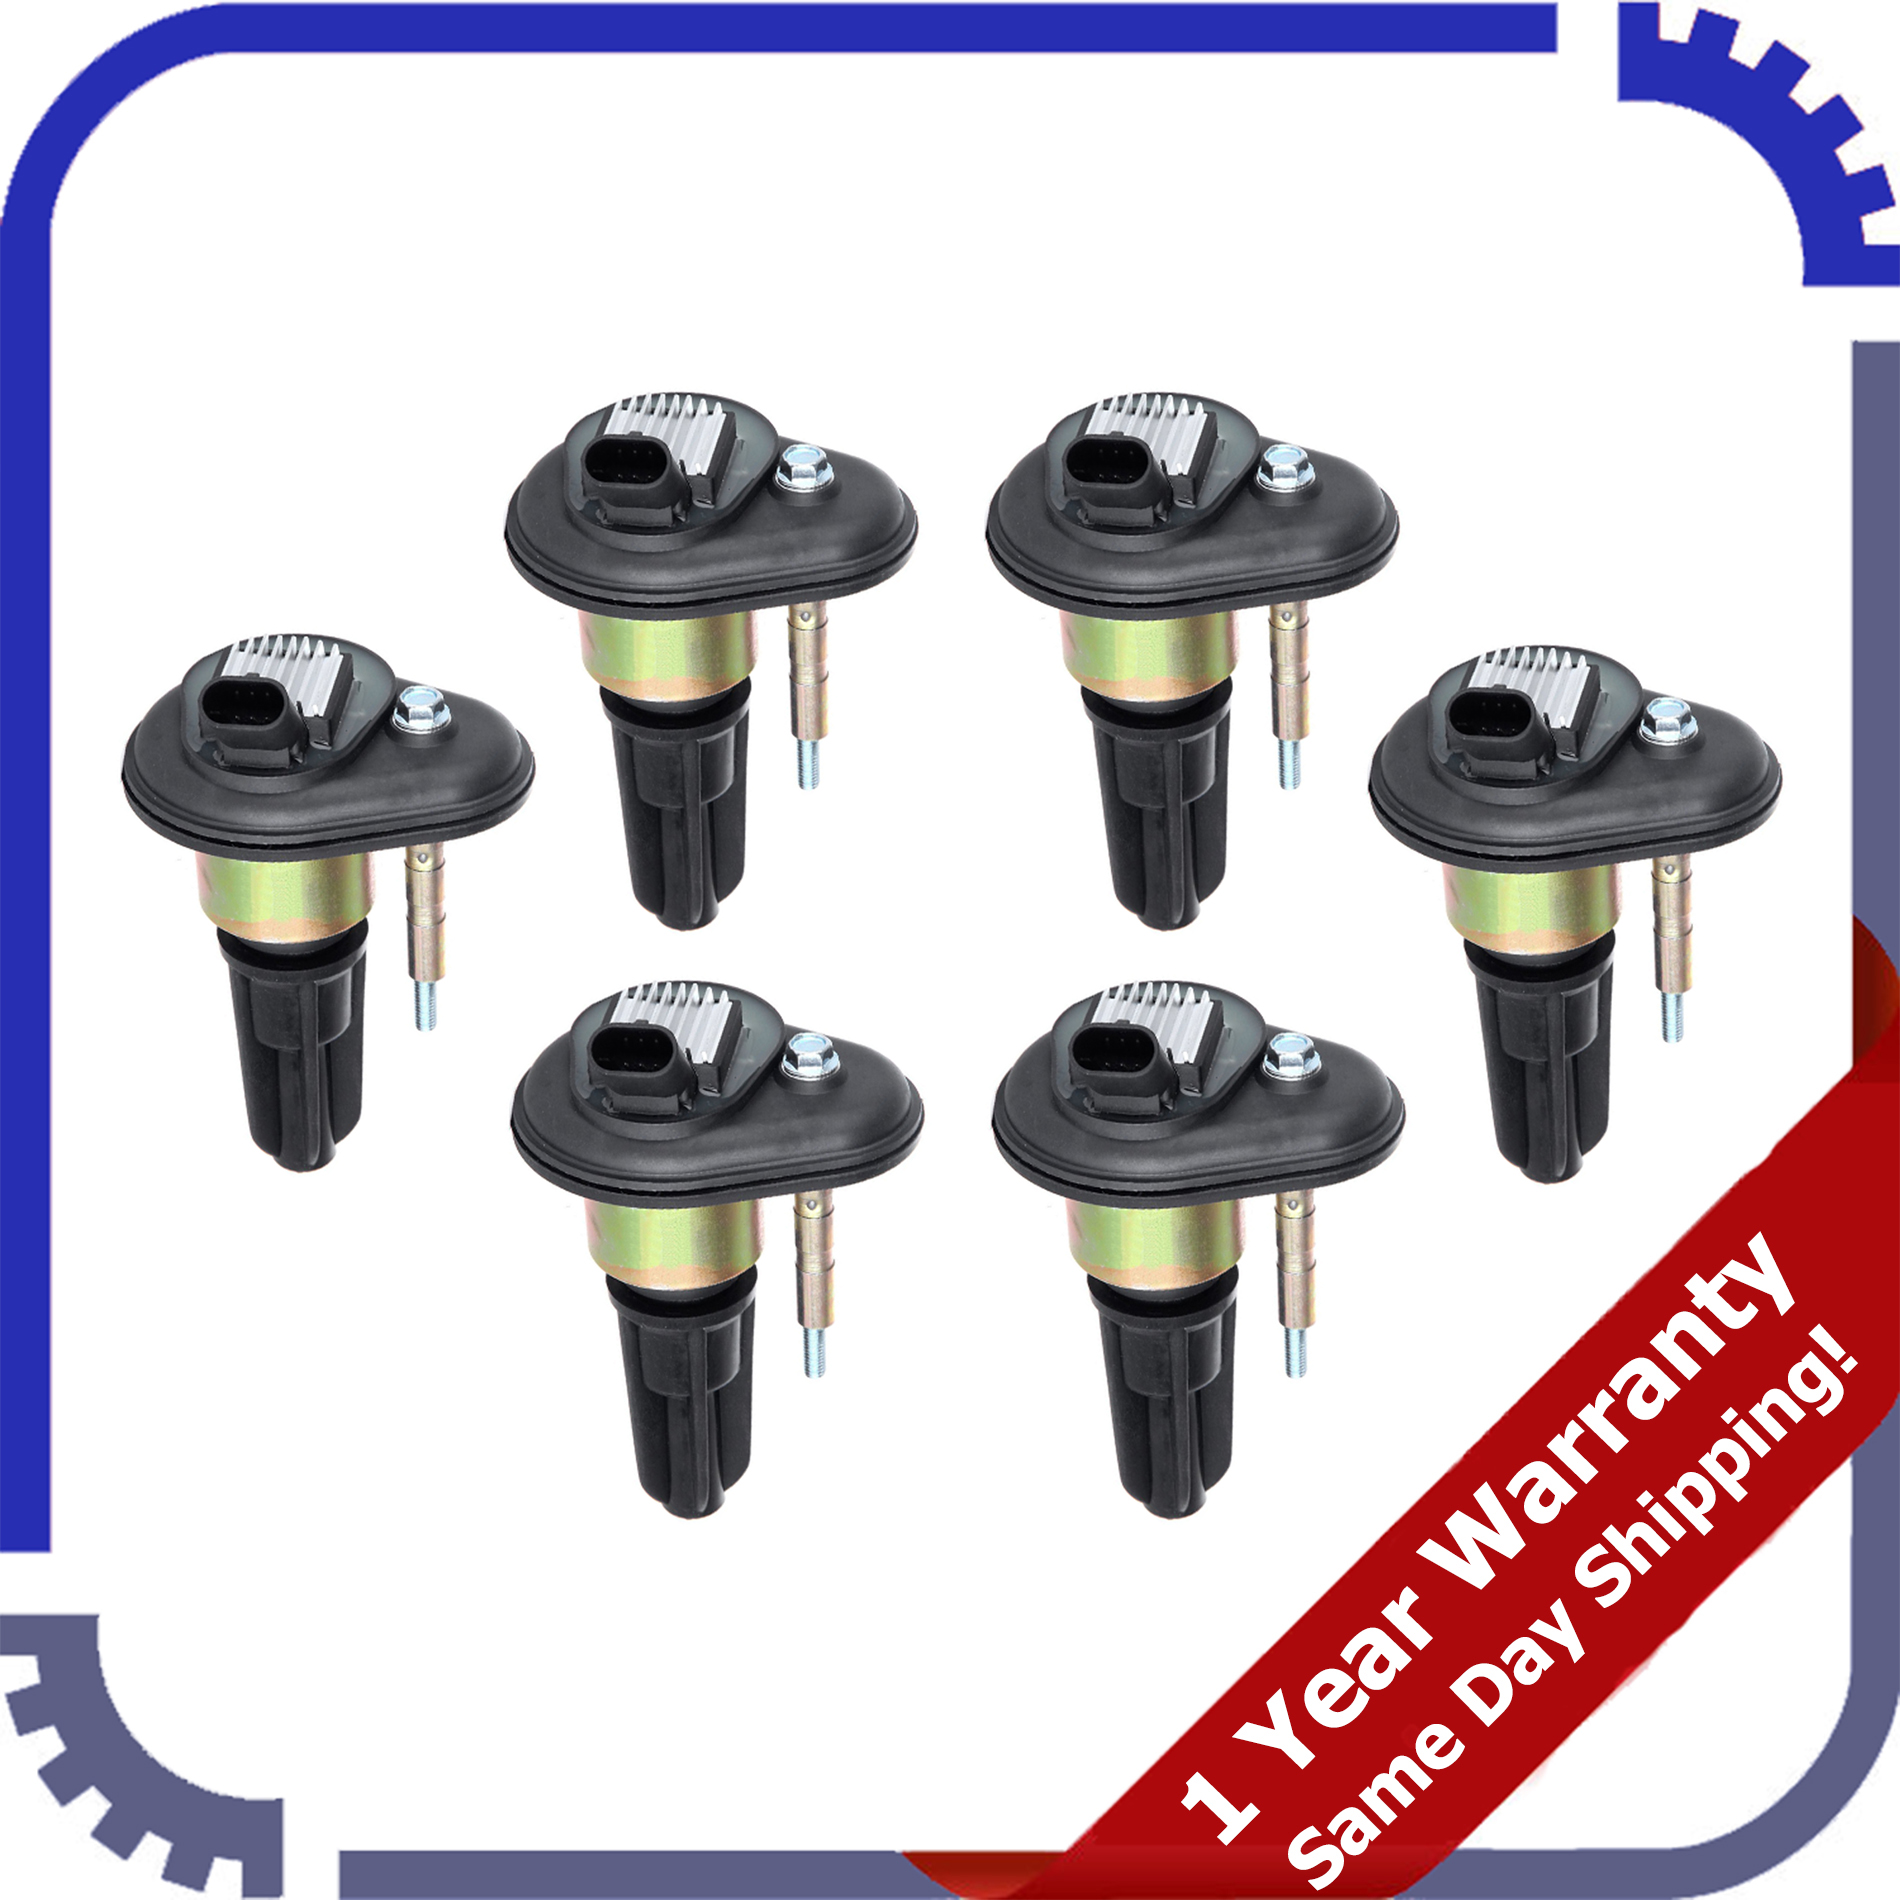 NEW 5 Pack Ignition Coils for Chevy Trailblazer GMC Canyon Envoy UF-303 C1395